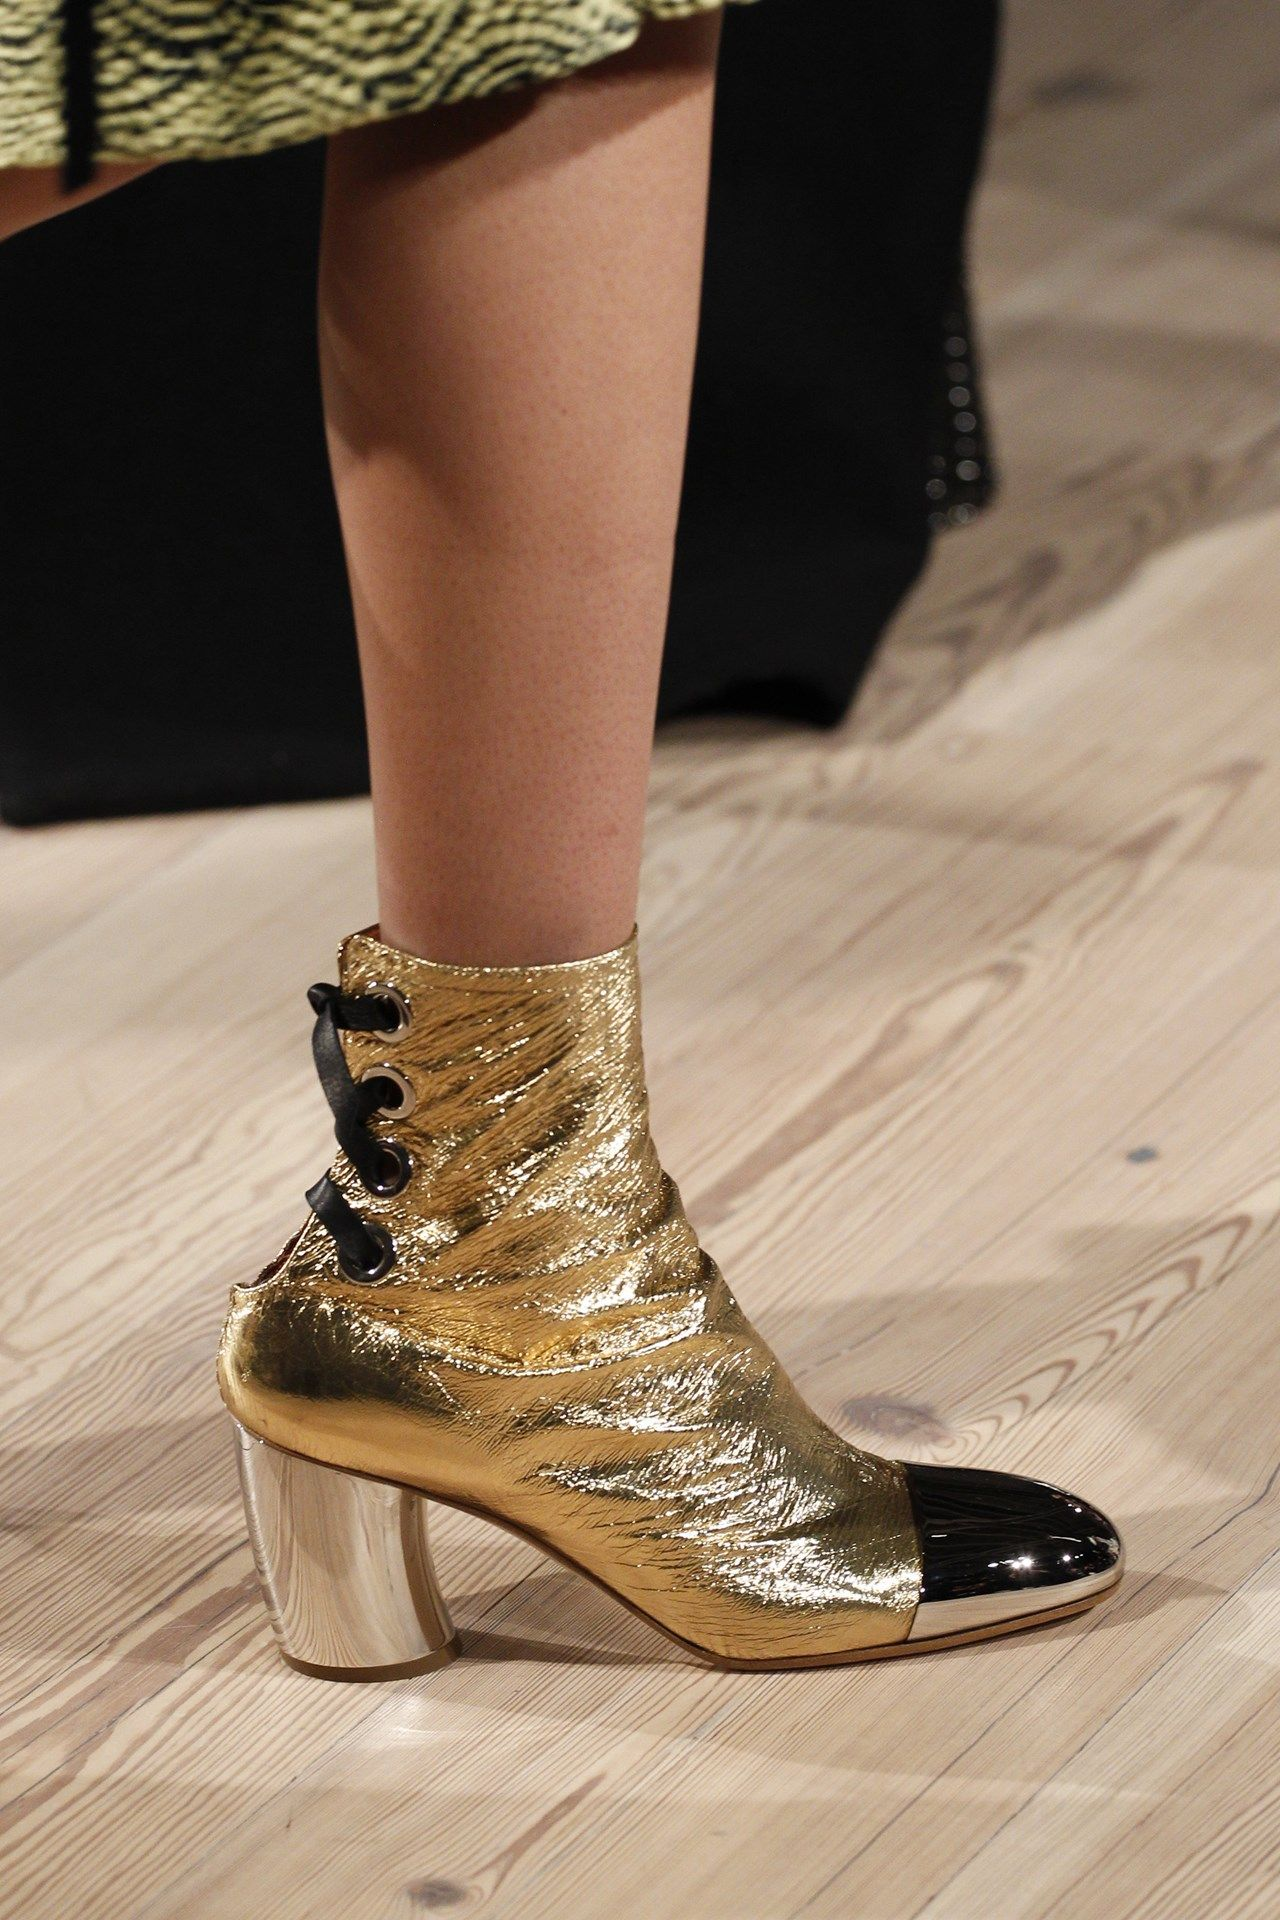 Go Ahead, Feast Your Eyes on the Best Fall 2016 Shoes - Proenza Schouler